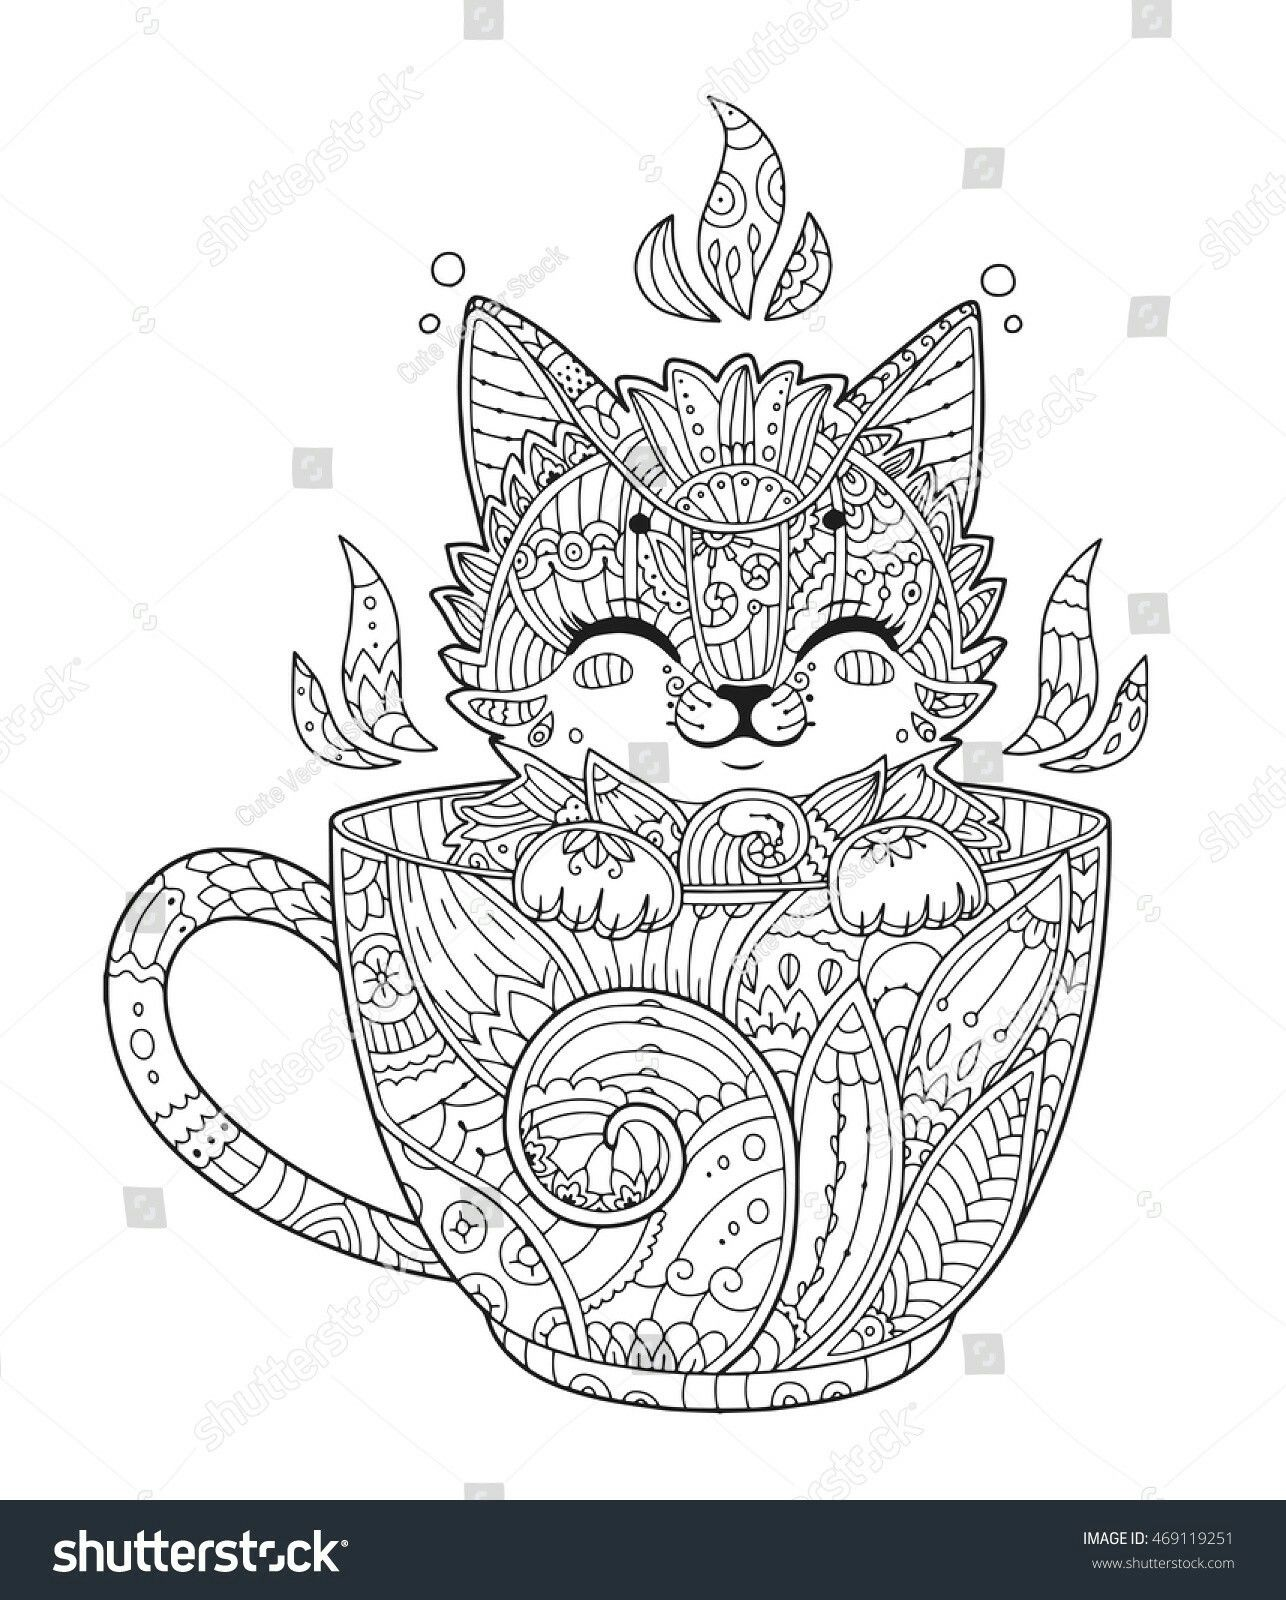 Pin By Beth Conroy On Coloring Animals Antistress Coloring Animal Coloring Pages Mandala Coloring Pages [ 1600 x 1286 Pixel ]